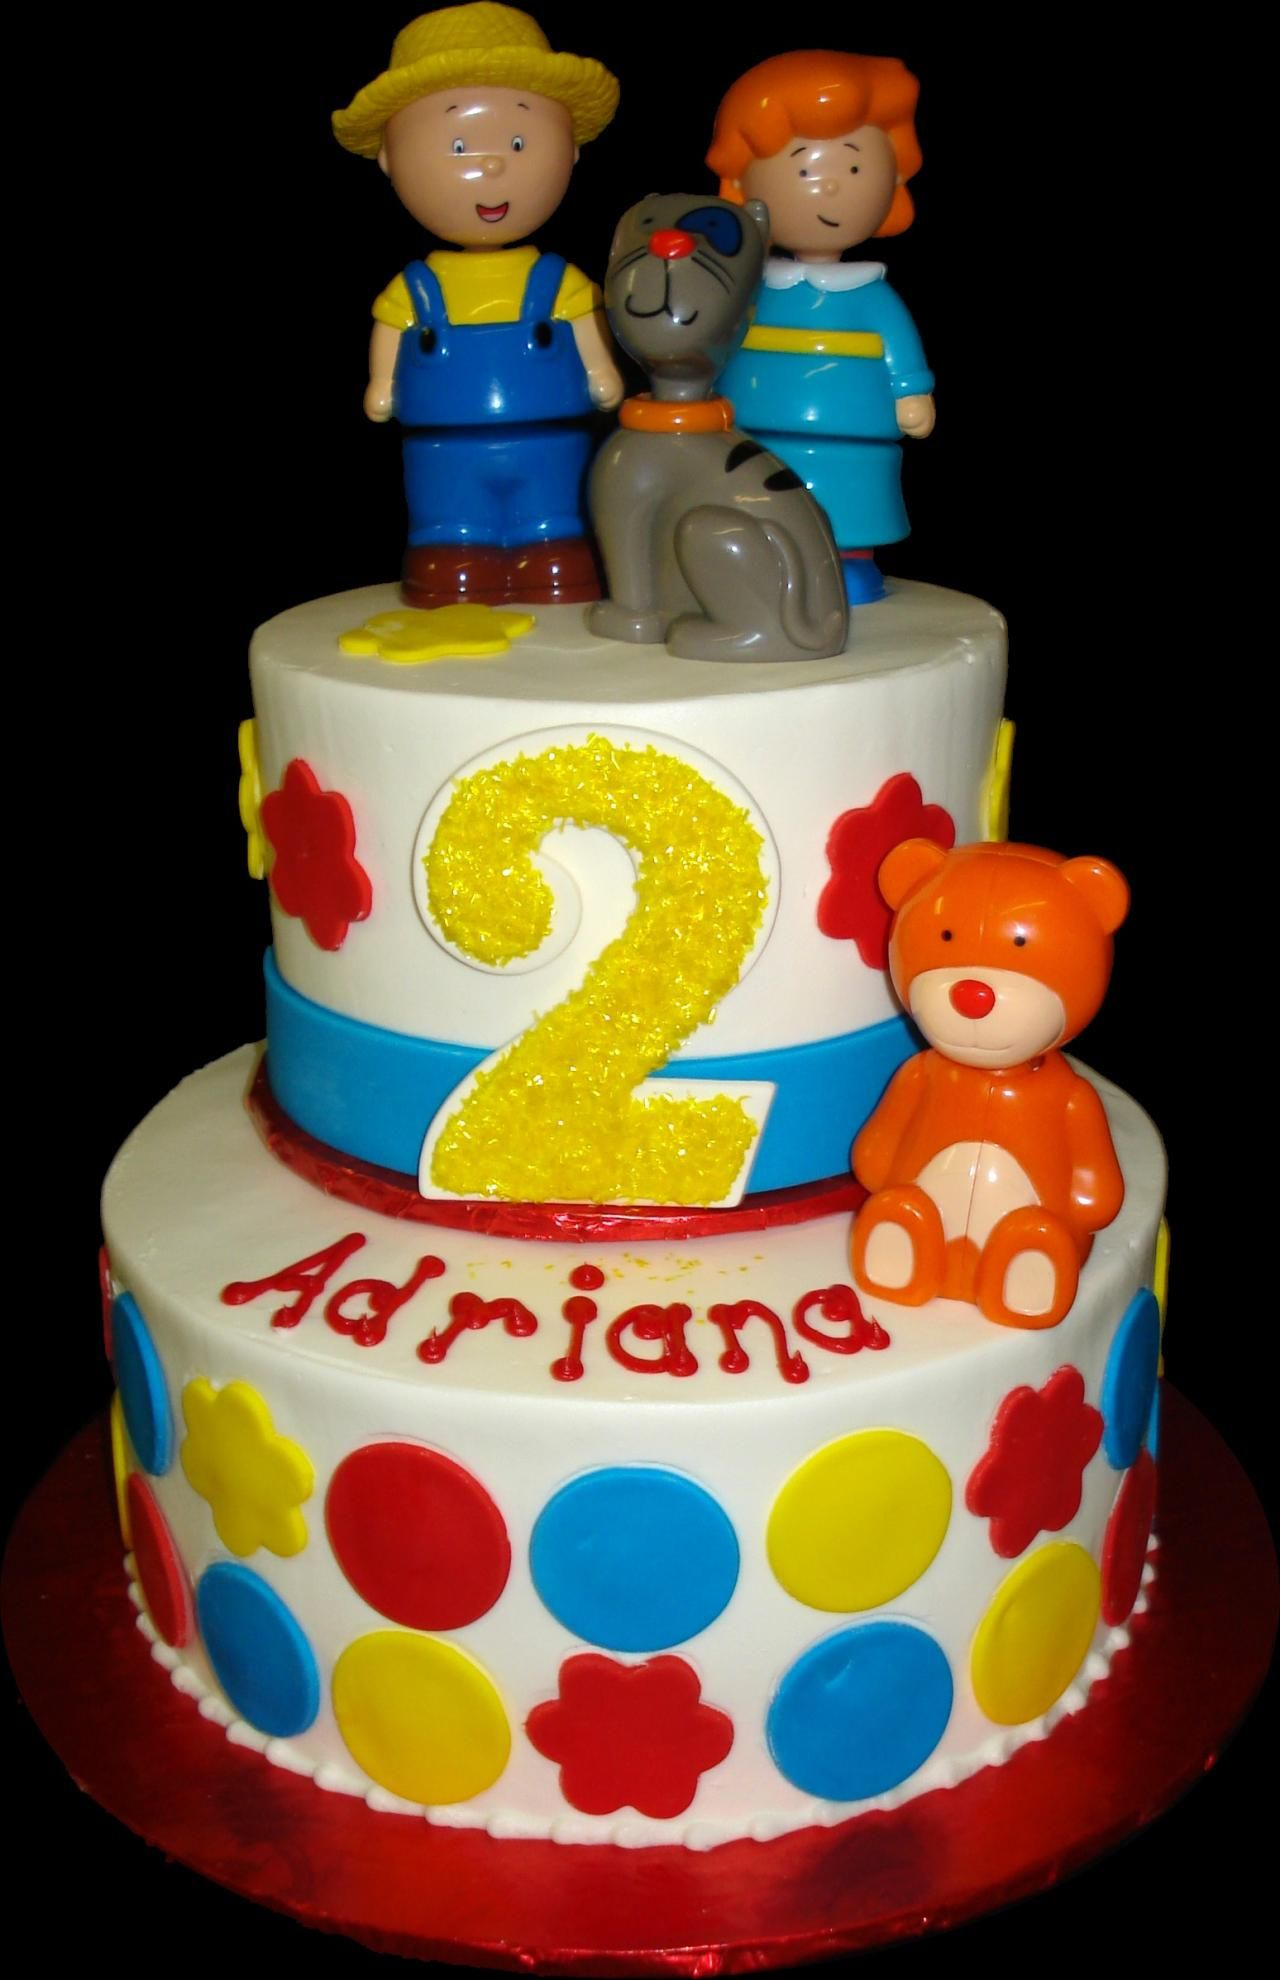 Rosie Cake Design : Caillou 2nd Birthday Cake. White buttercream iced, round 2 ...